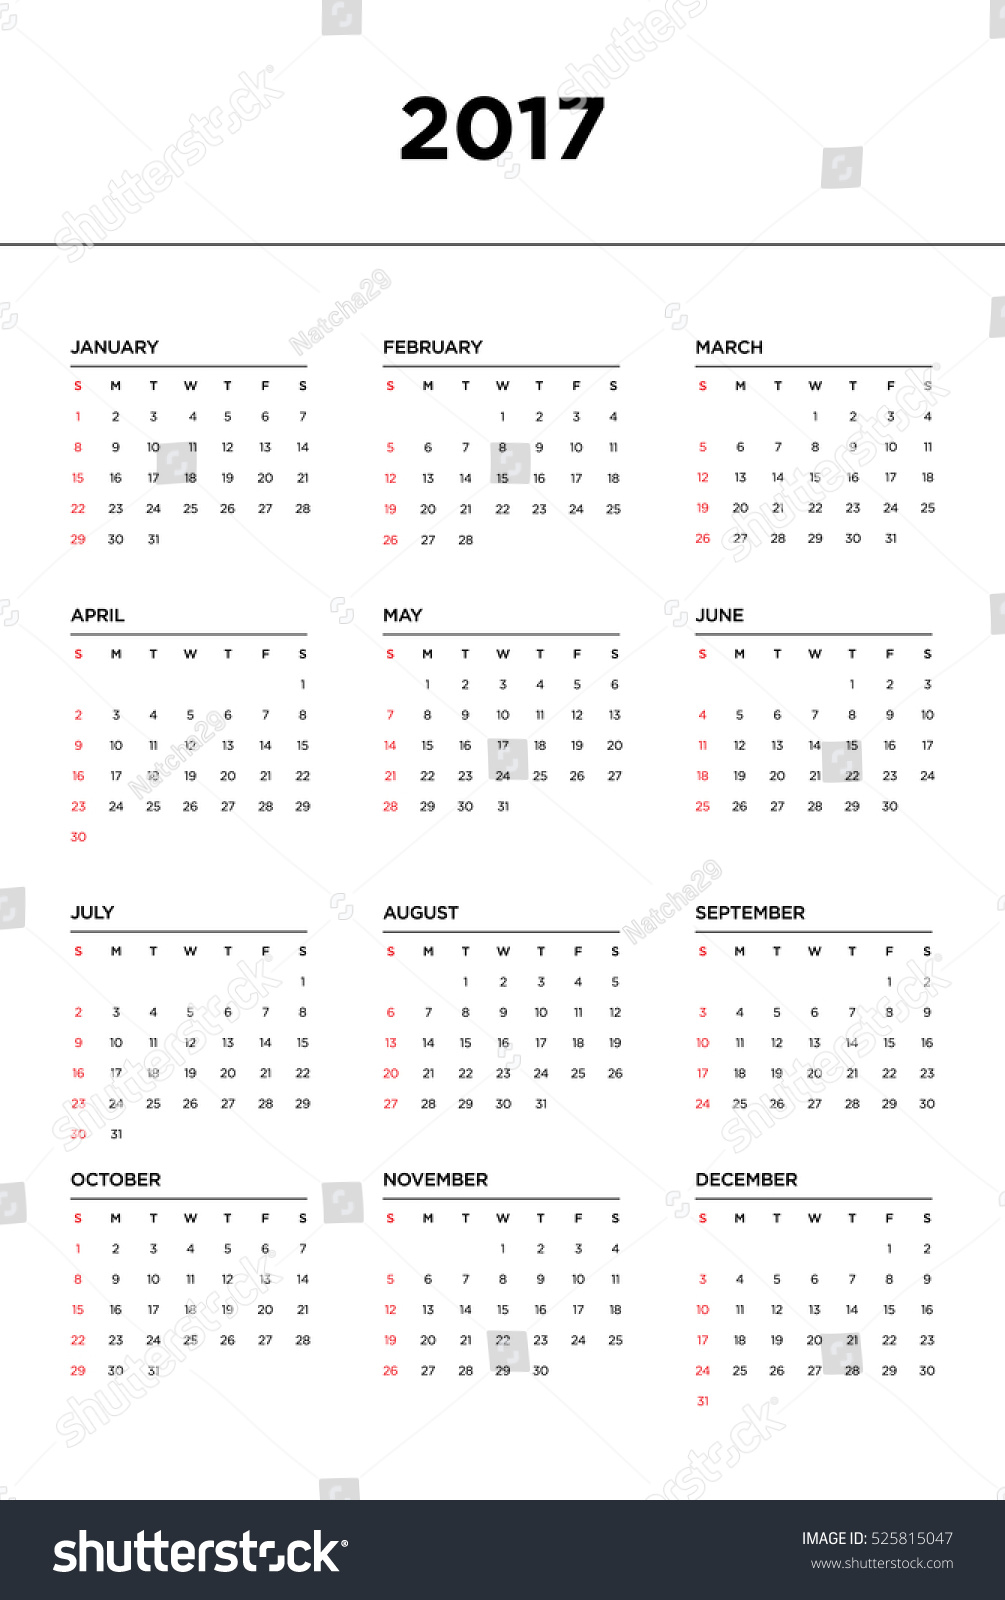 Year Calendar Starting : Calendar year start week sunday stock vector